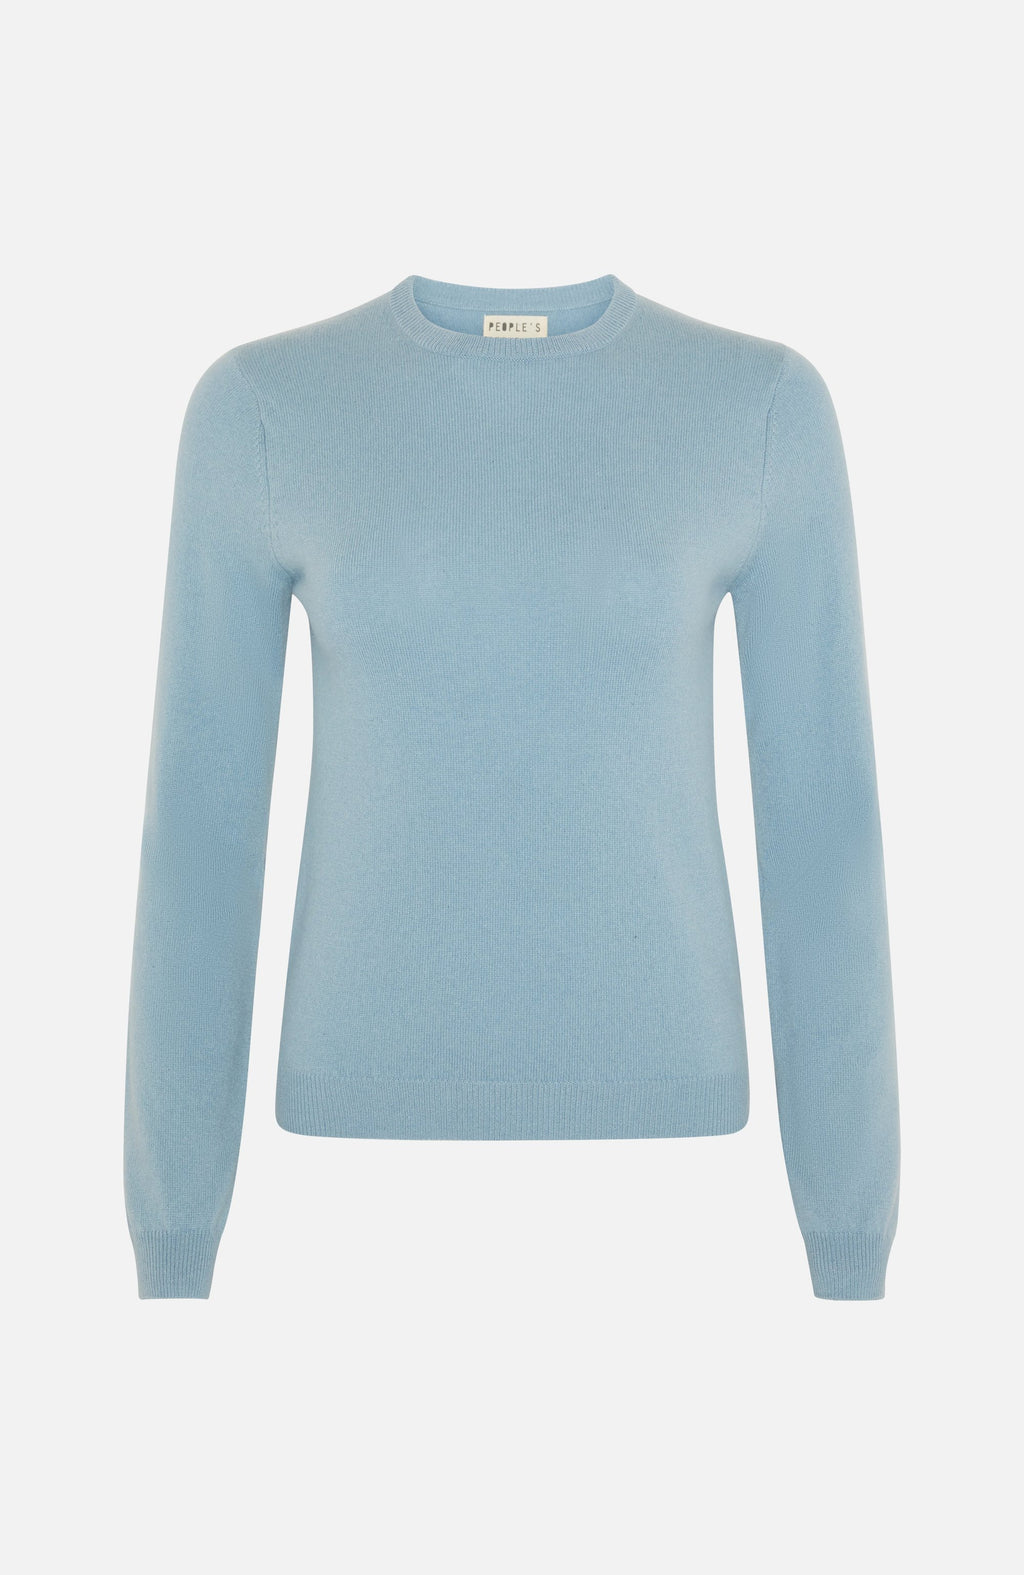 Republic Of Cashmere Round Neck Blue Sweater